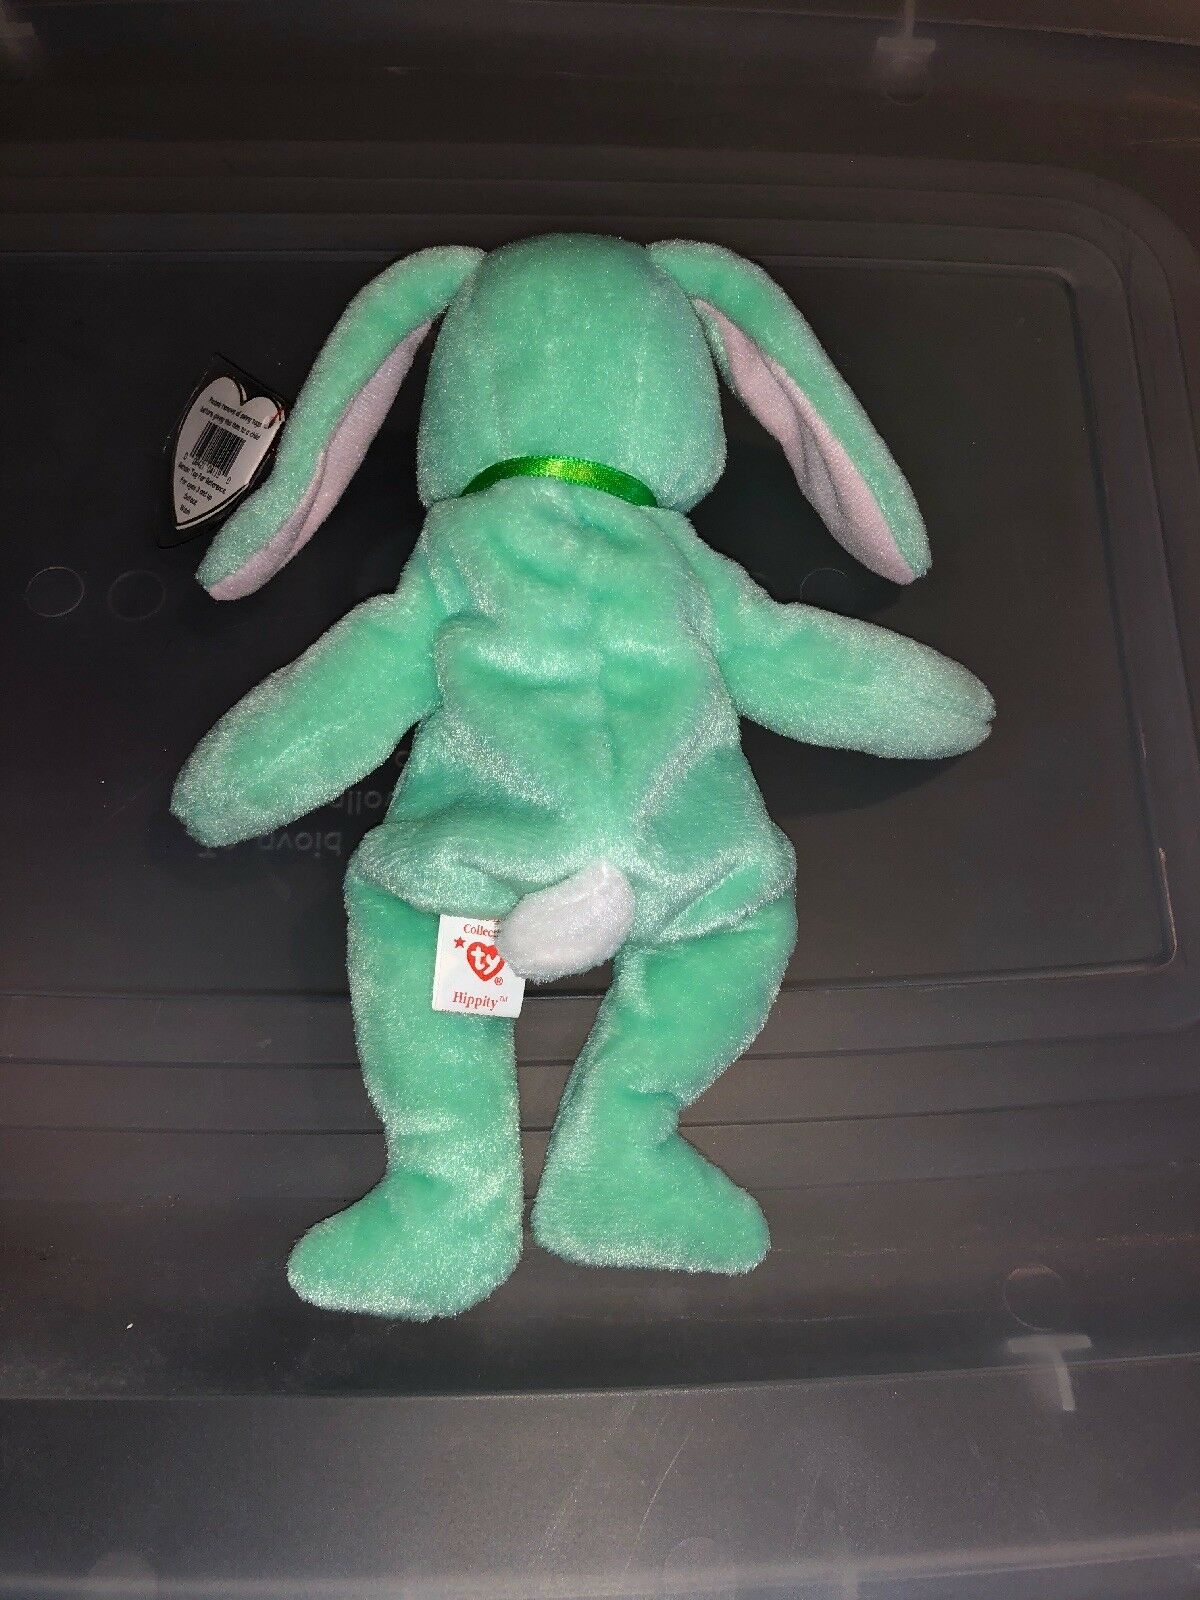 303d2fdec5b ... TY BEANIE BABY HIPPITY 1996 Rare Retired With Errors Tag Errors With  298137 ...